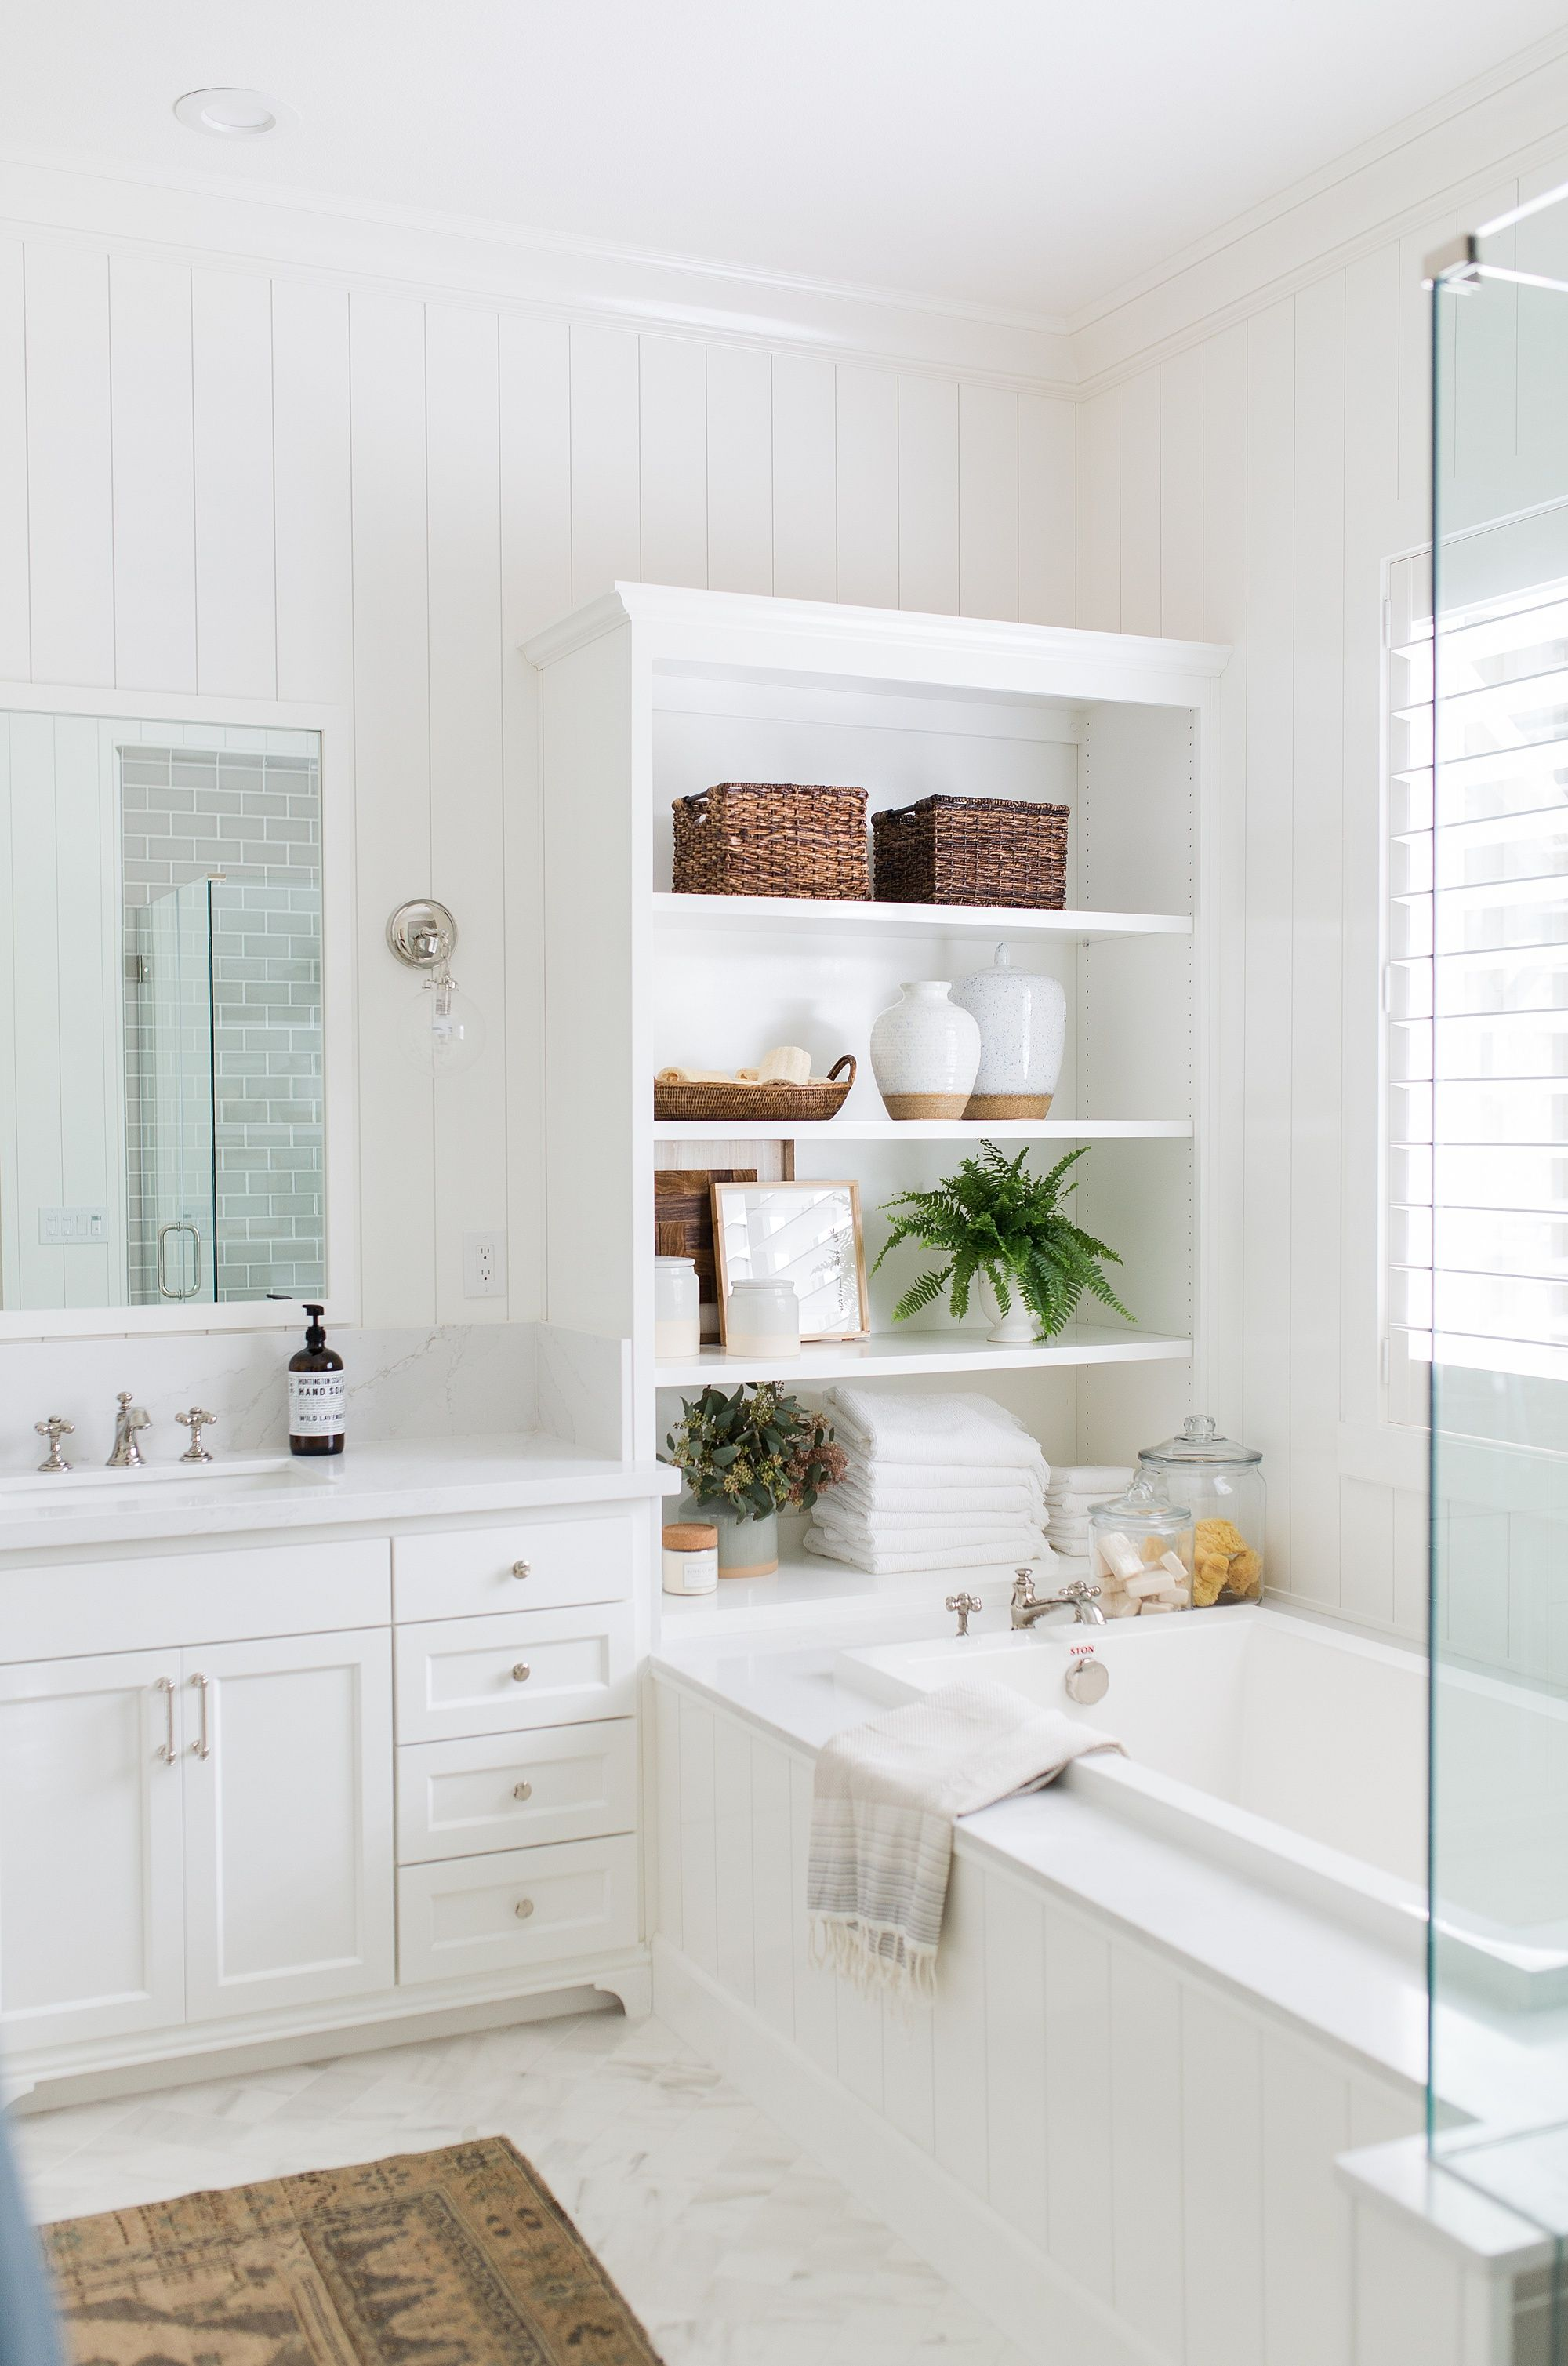 Reveal Marble Bathroom Goals El Dorado Hills Ca Design Shop